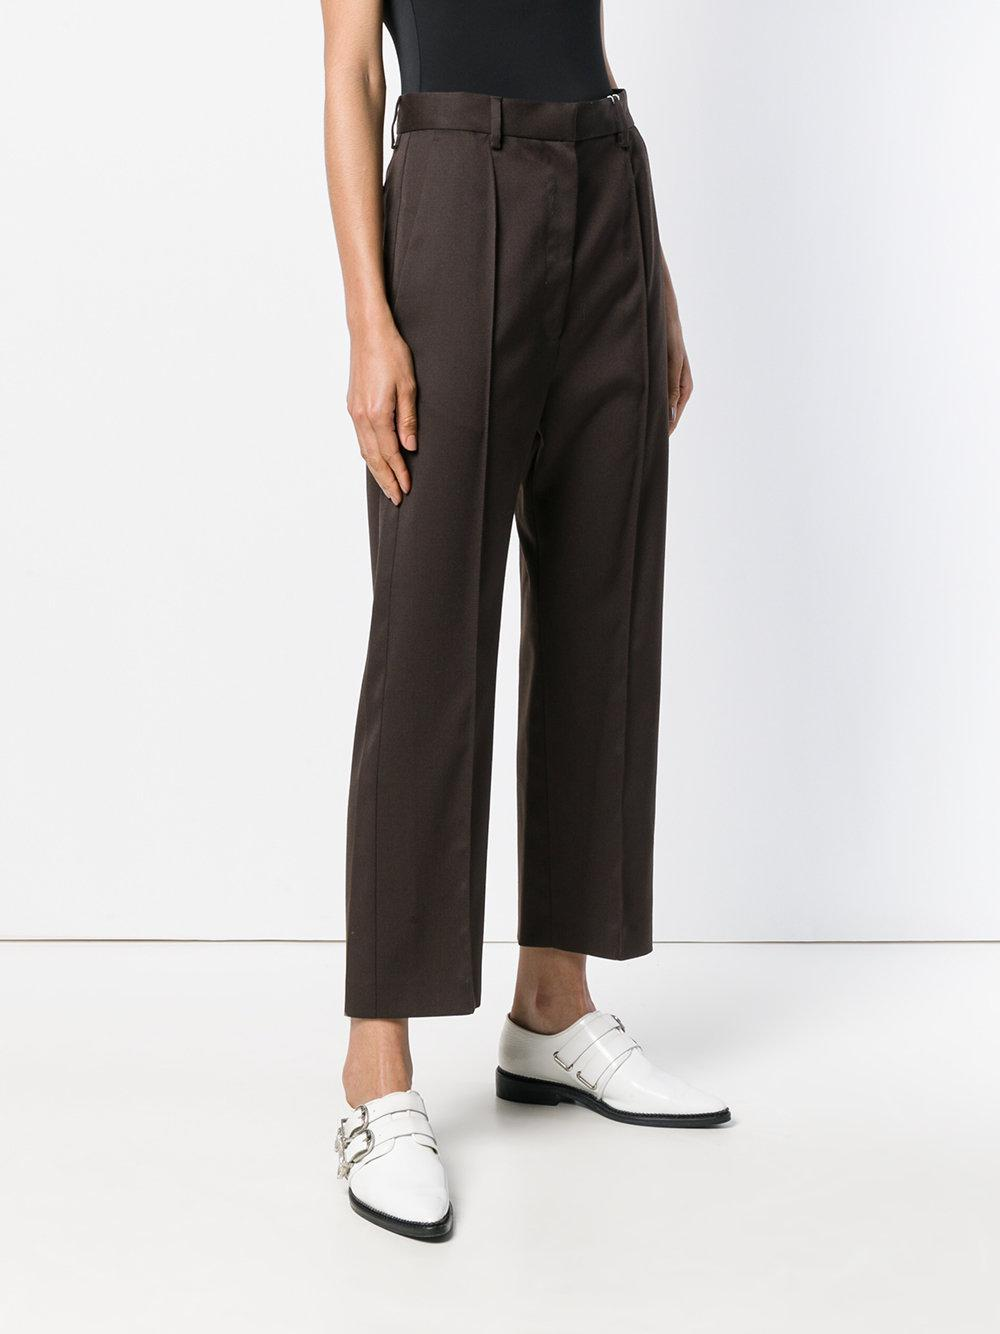 perfectly tailored cropped trousers - Brown Maison Martin Margiela wADktb